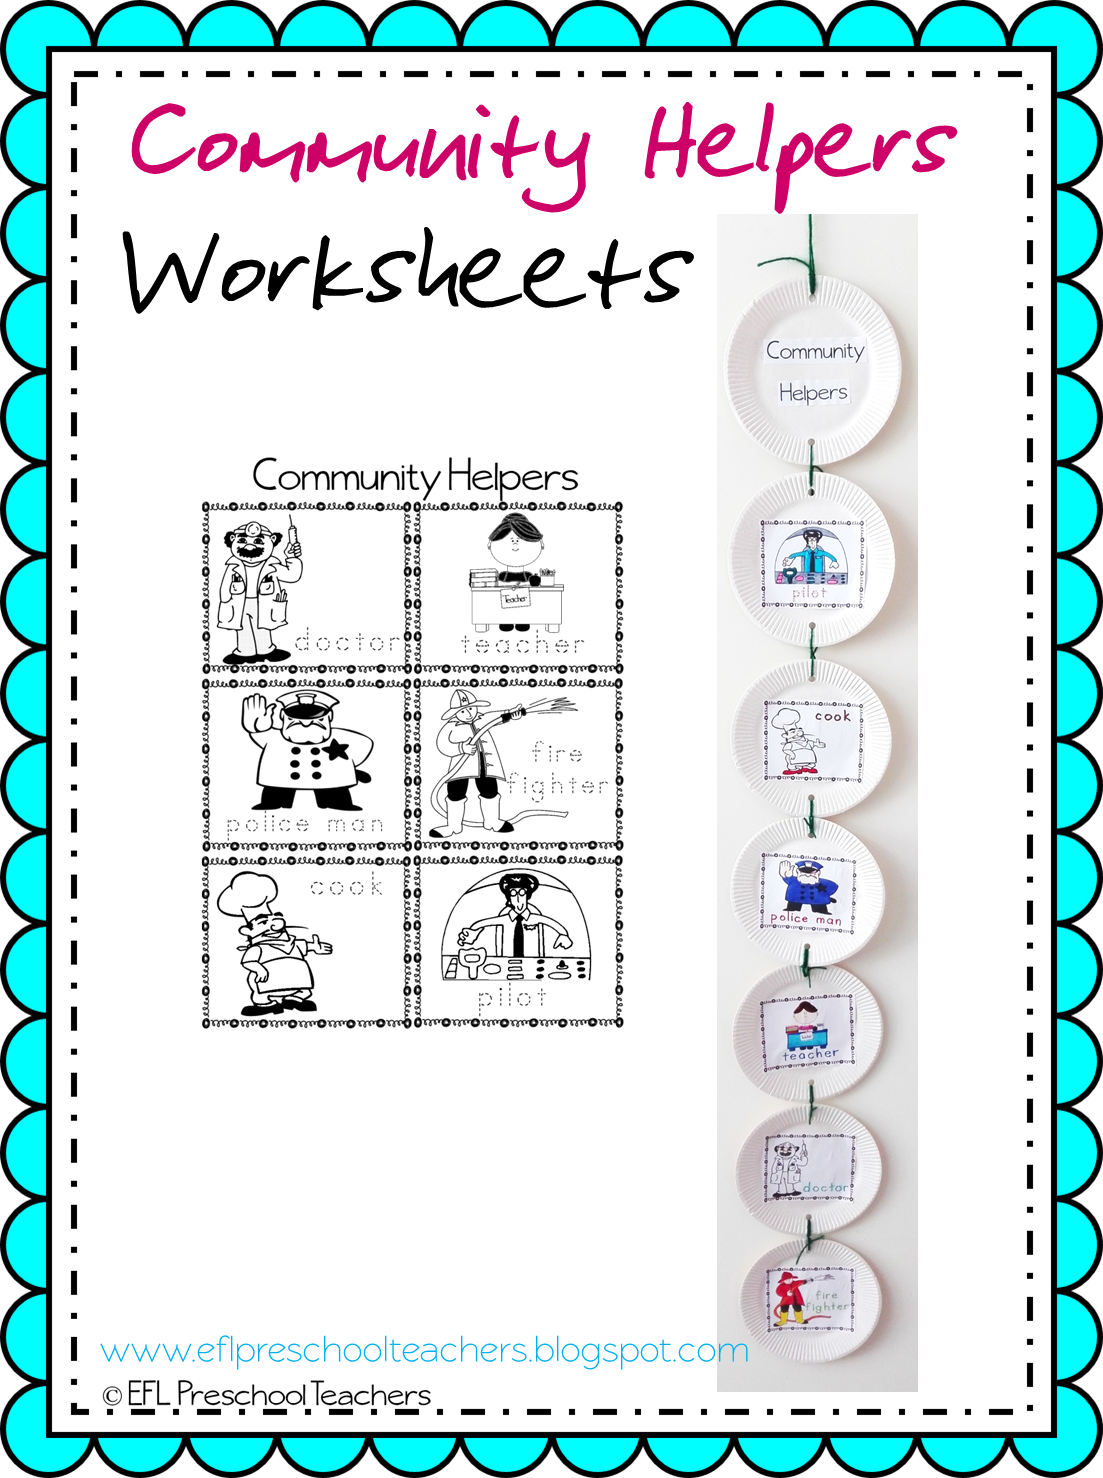 Esl Efl Preschool Teachers Community Helpers Worksheets And More